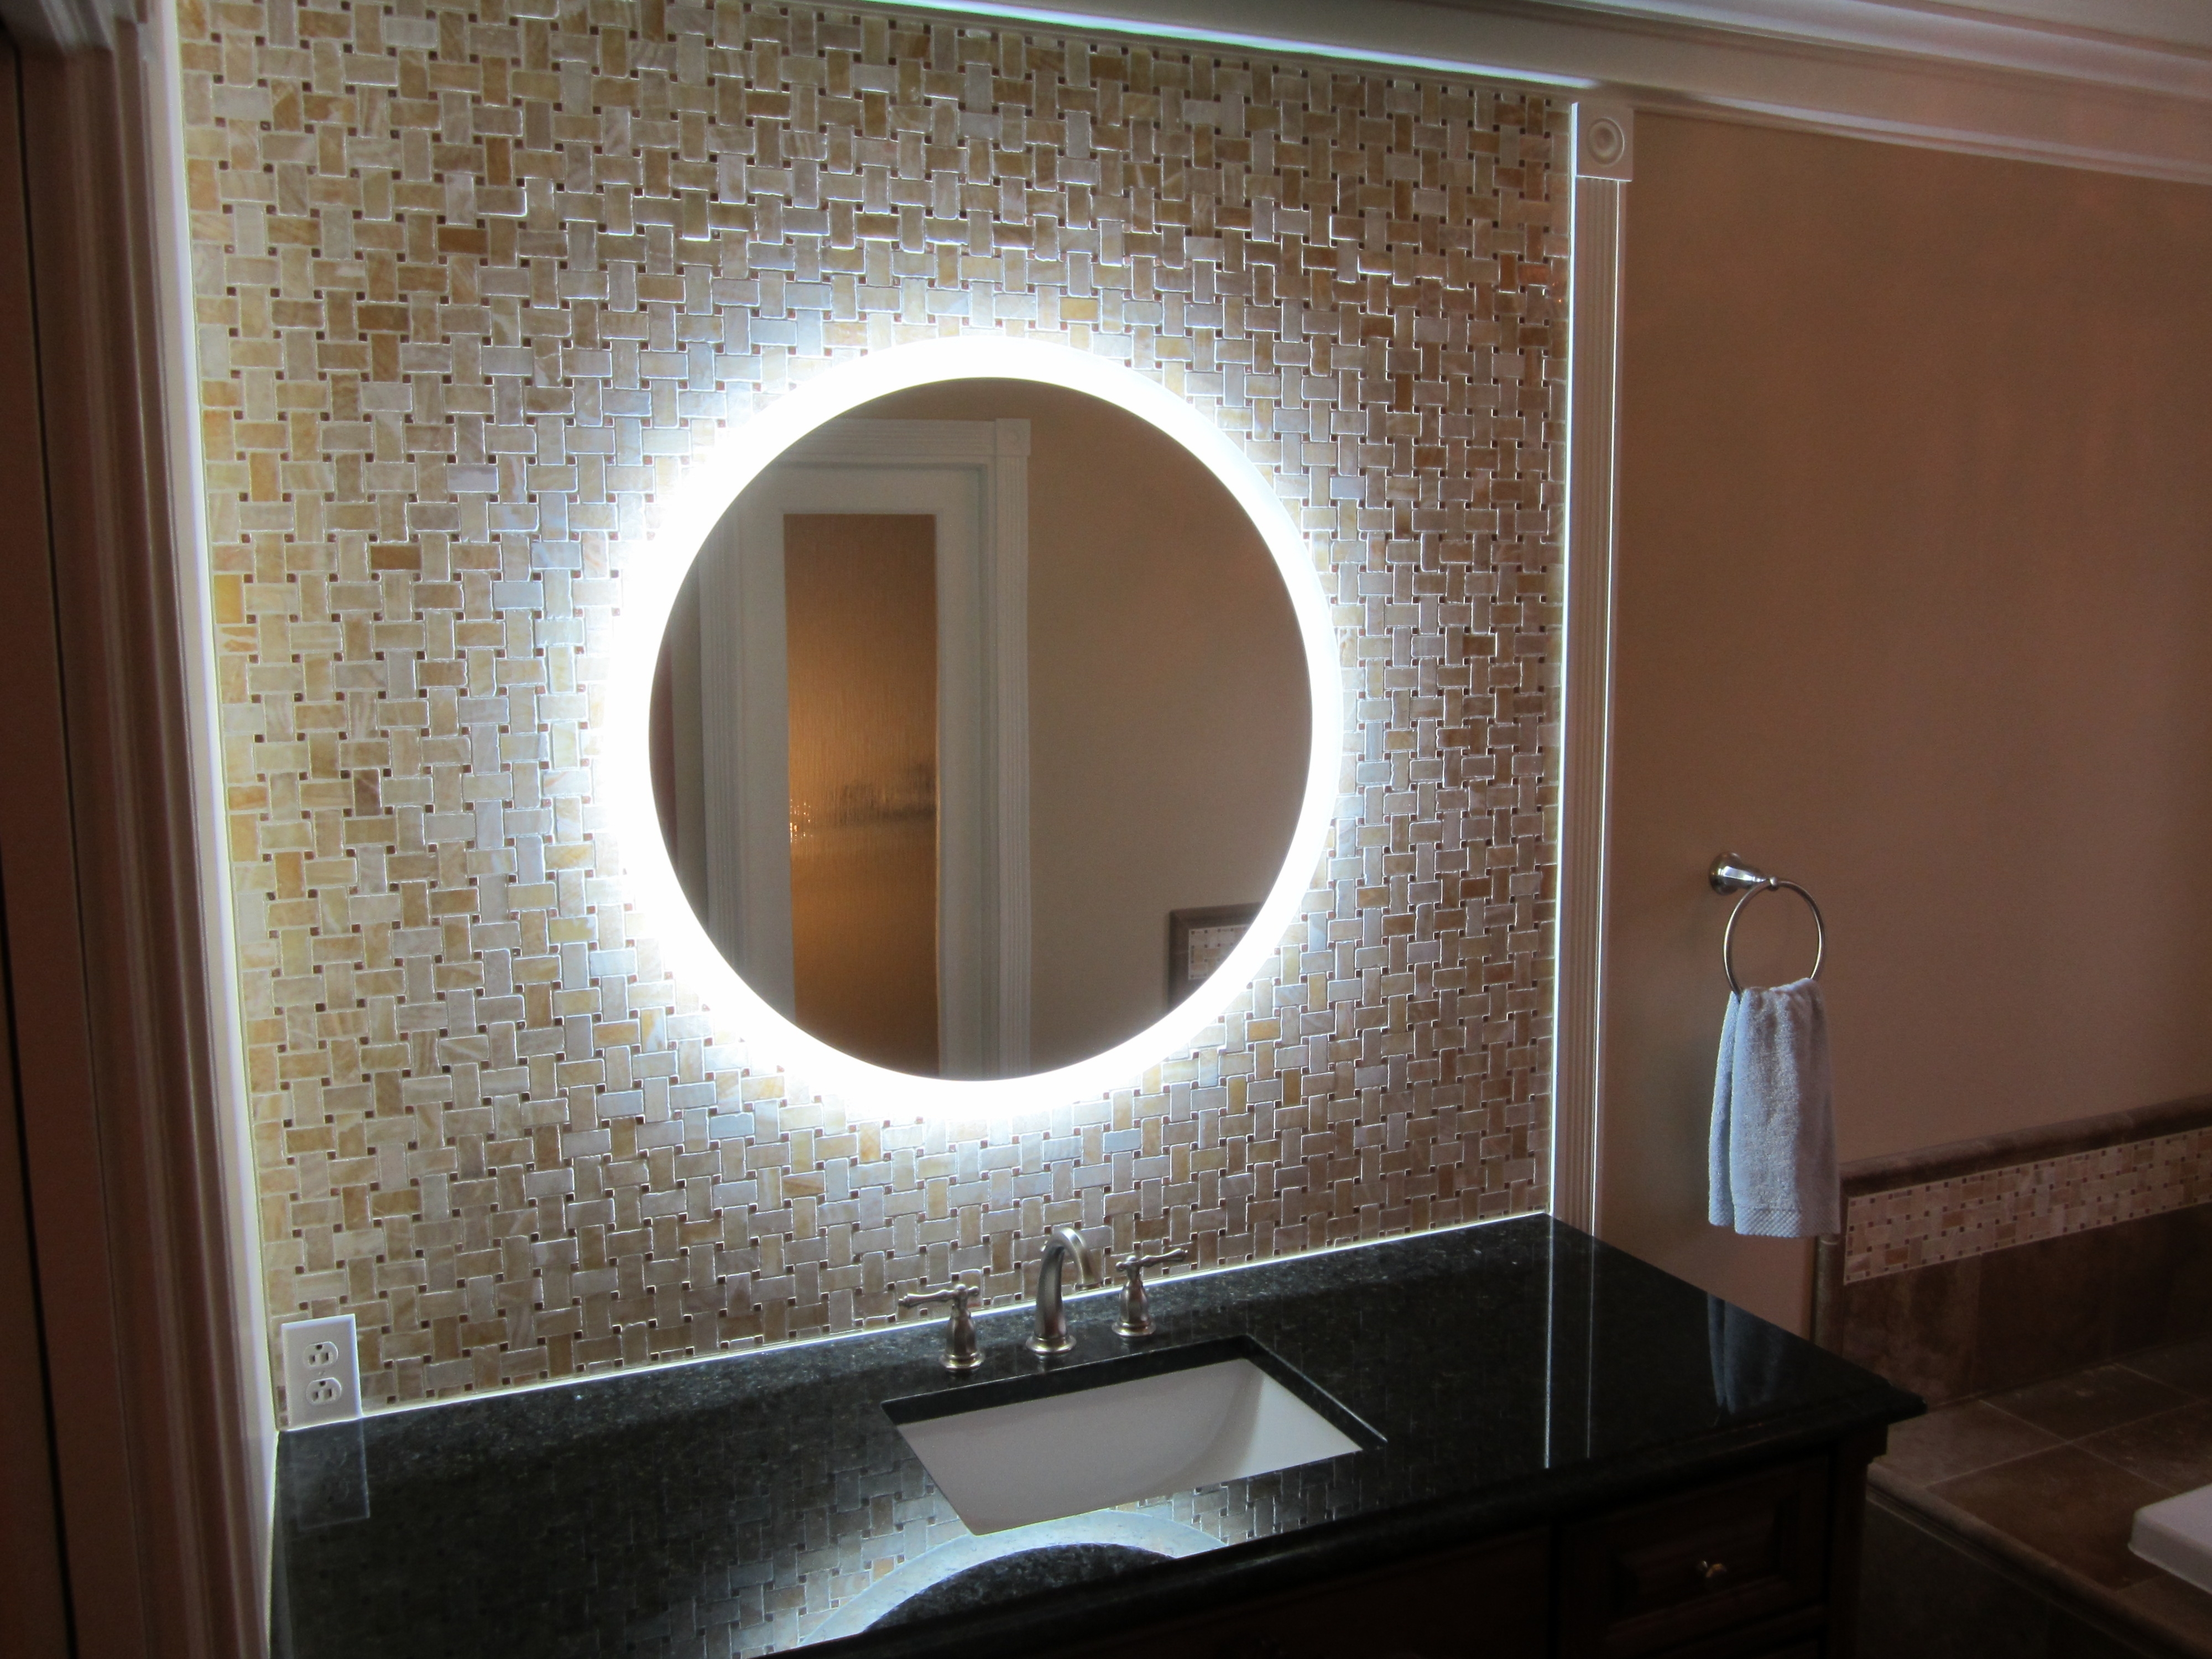 Round Bathroom Mirrors With Lights